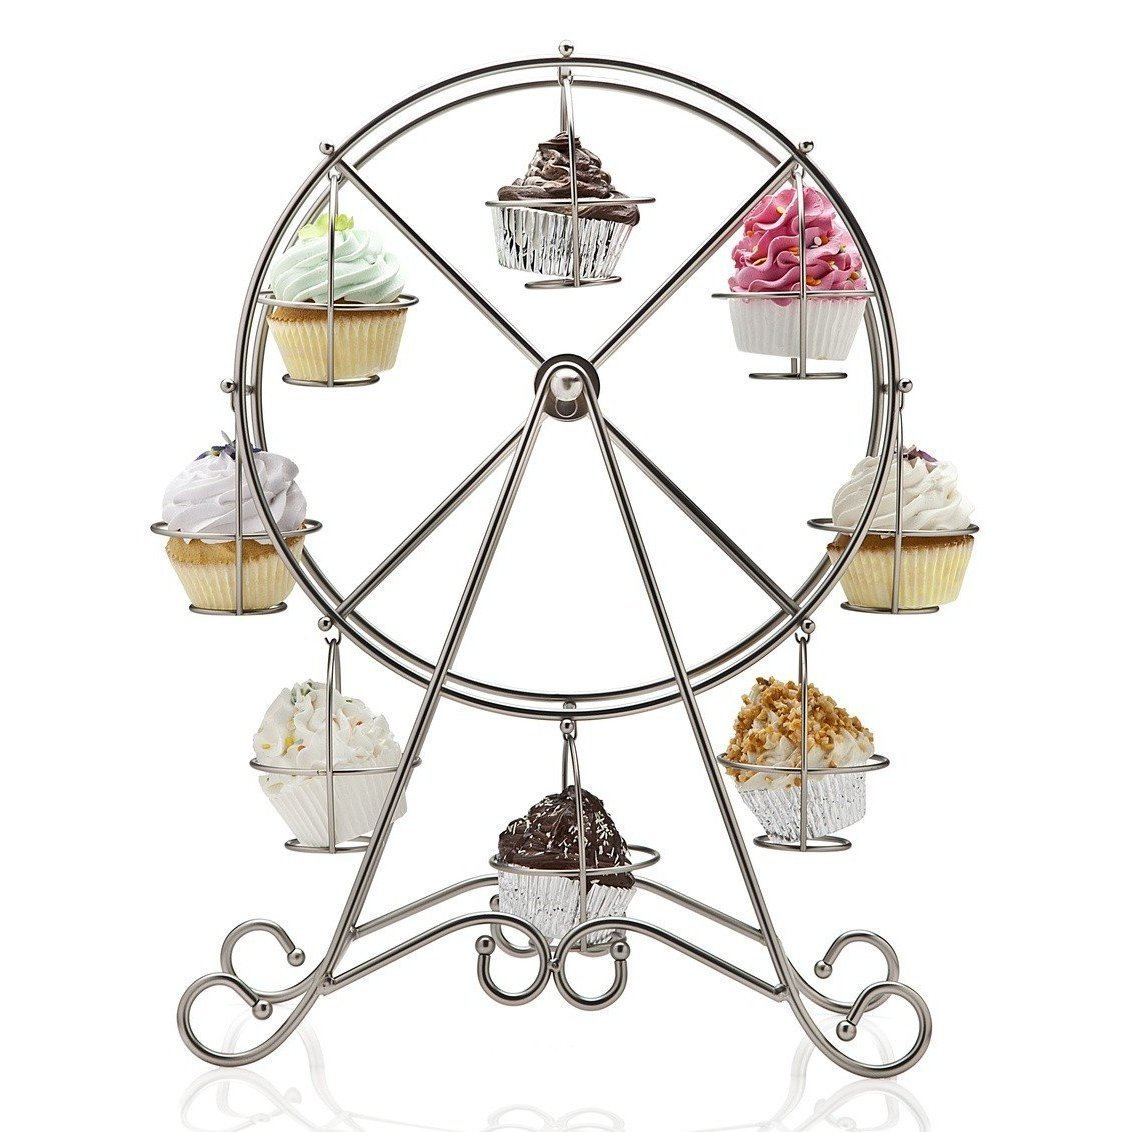 Ferris Cupcake Stand for party